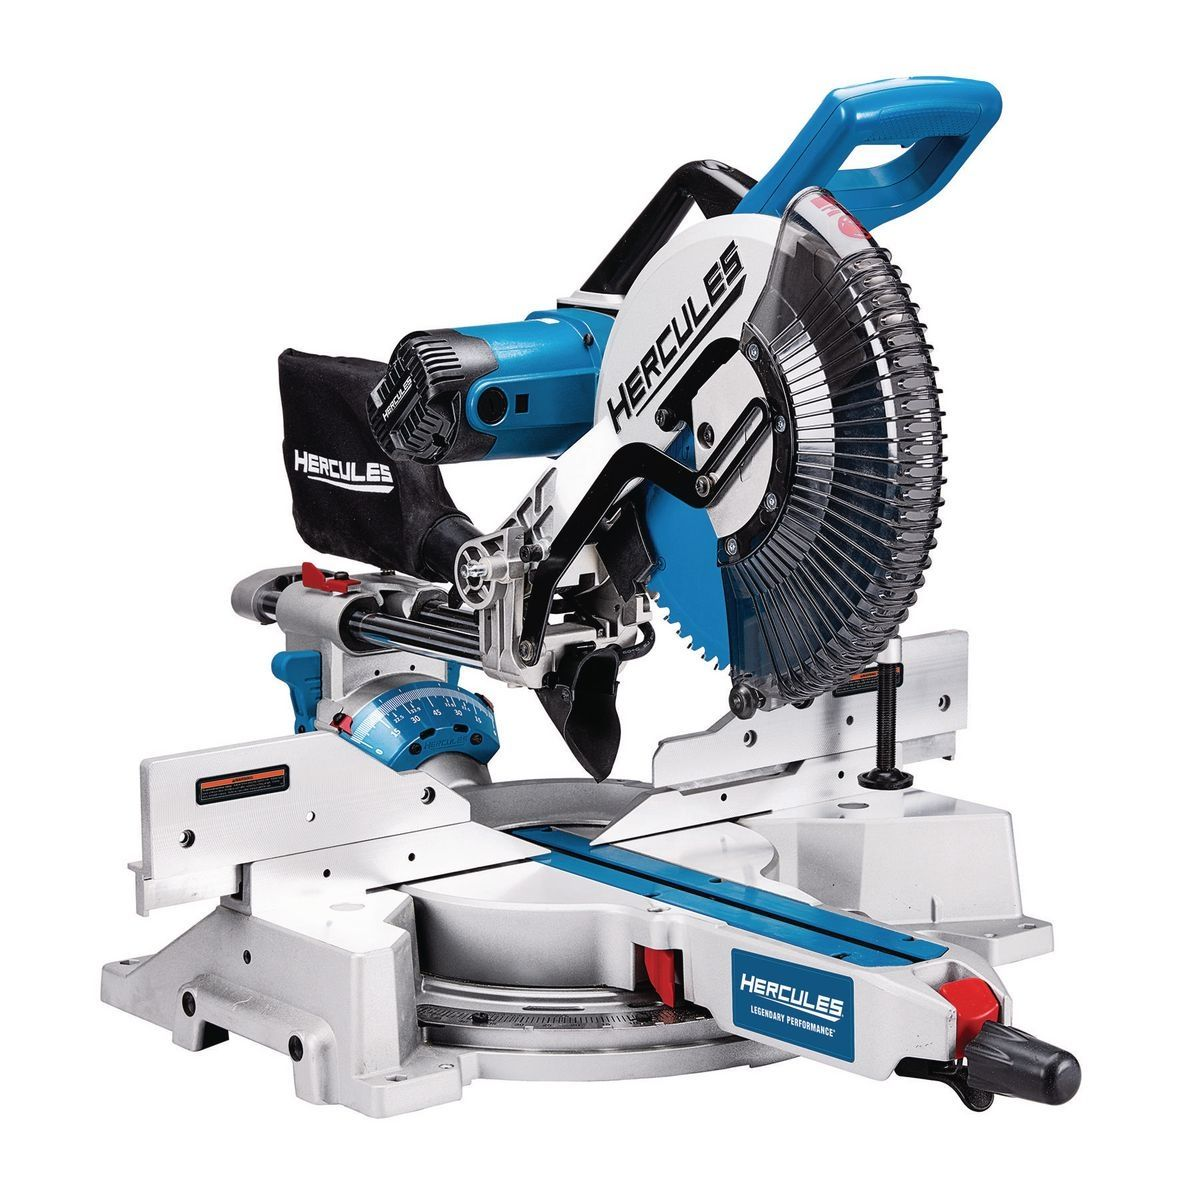 12 In Dual Bevel Sliding Compound Miter Saw With Precision Led Shadow Guide Sliding Compound Miter Saw Miter Saw Reviews Miter Saw